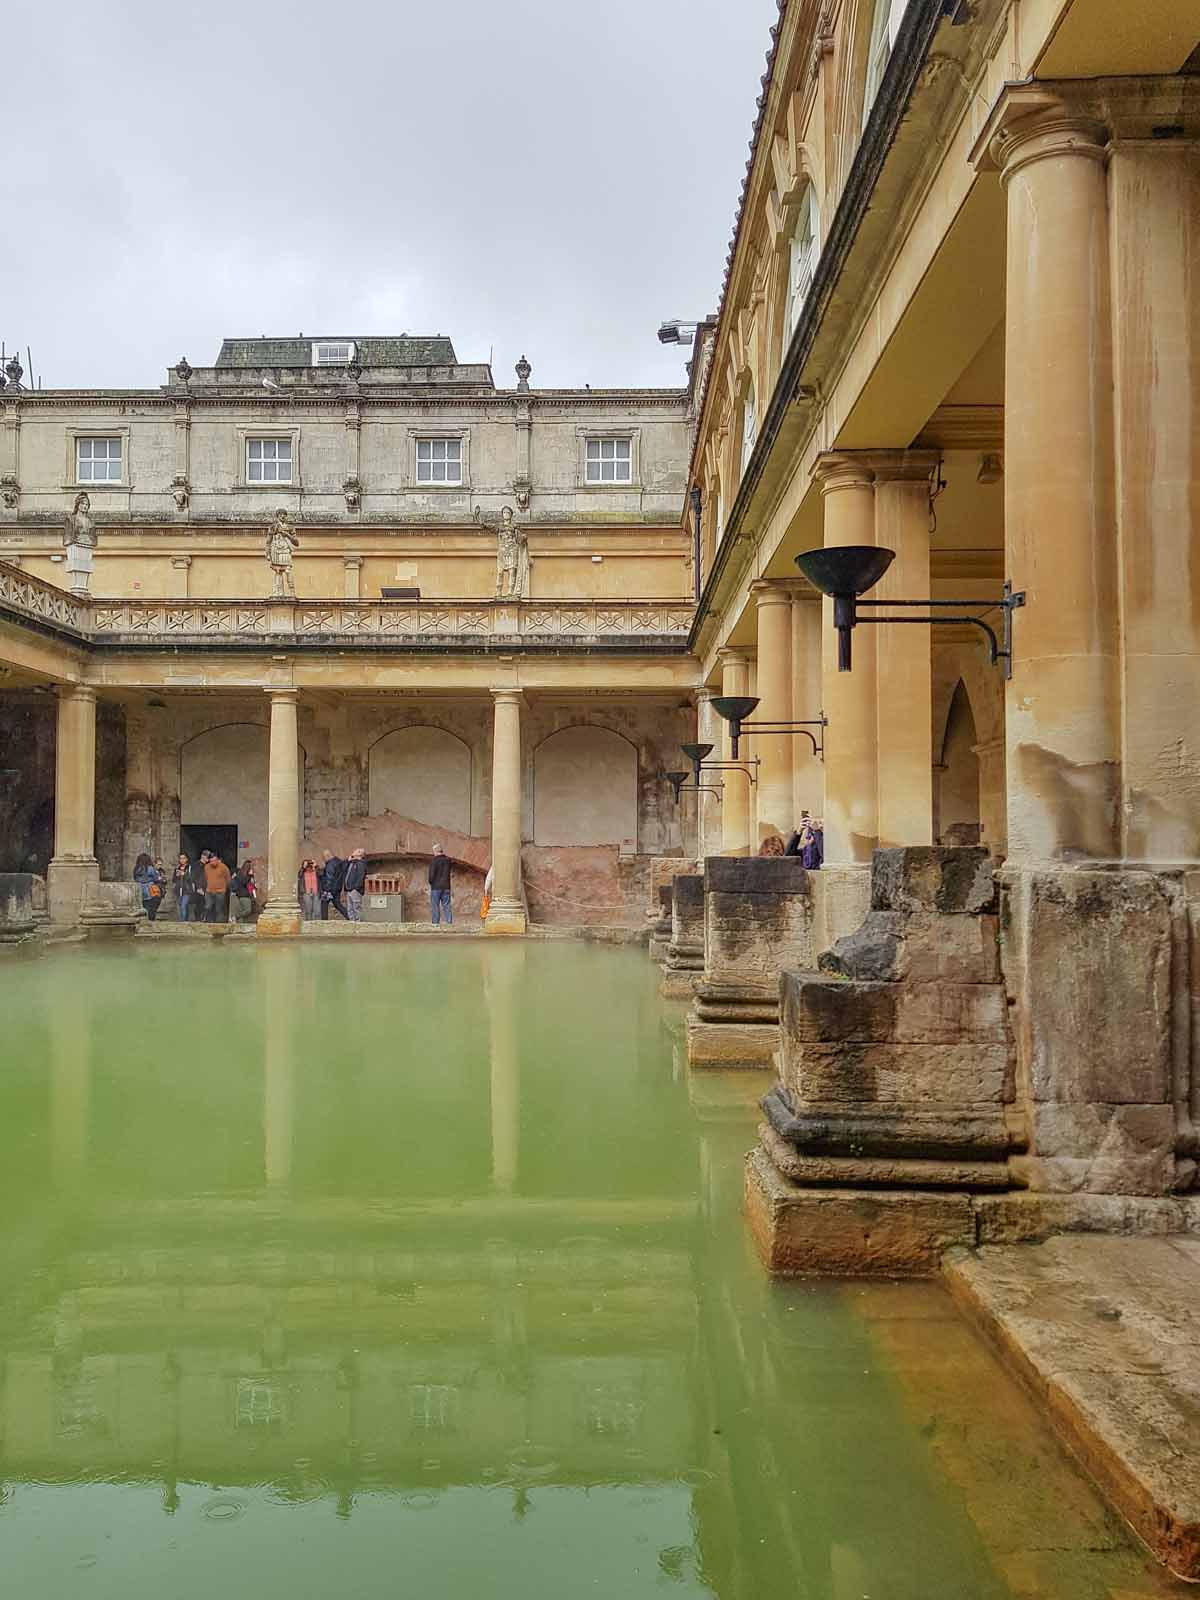 10x zéker doen tijdens je stedentrip Bath, Romeinse Baden - Map of Joy